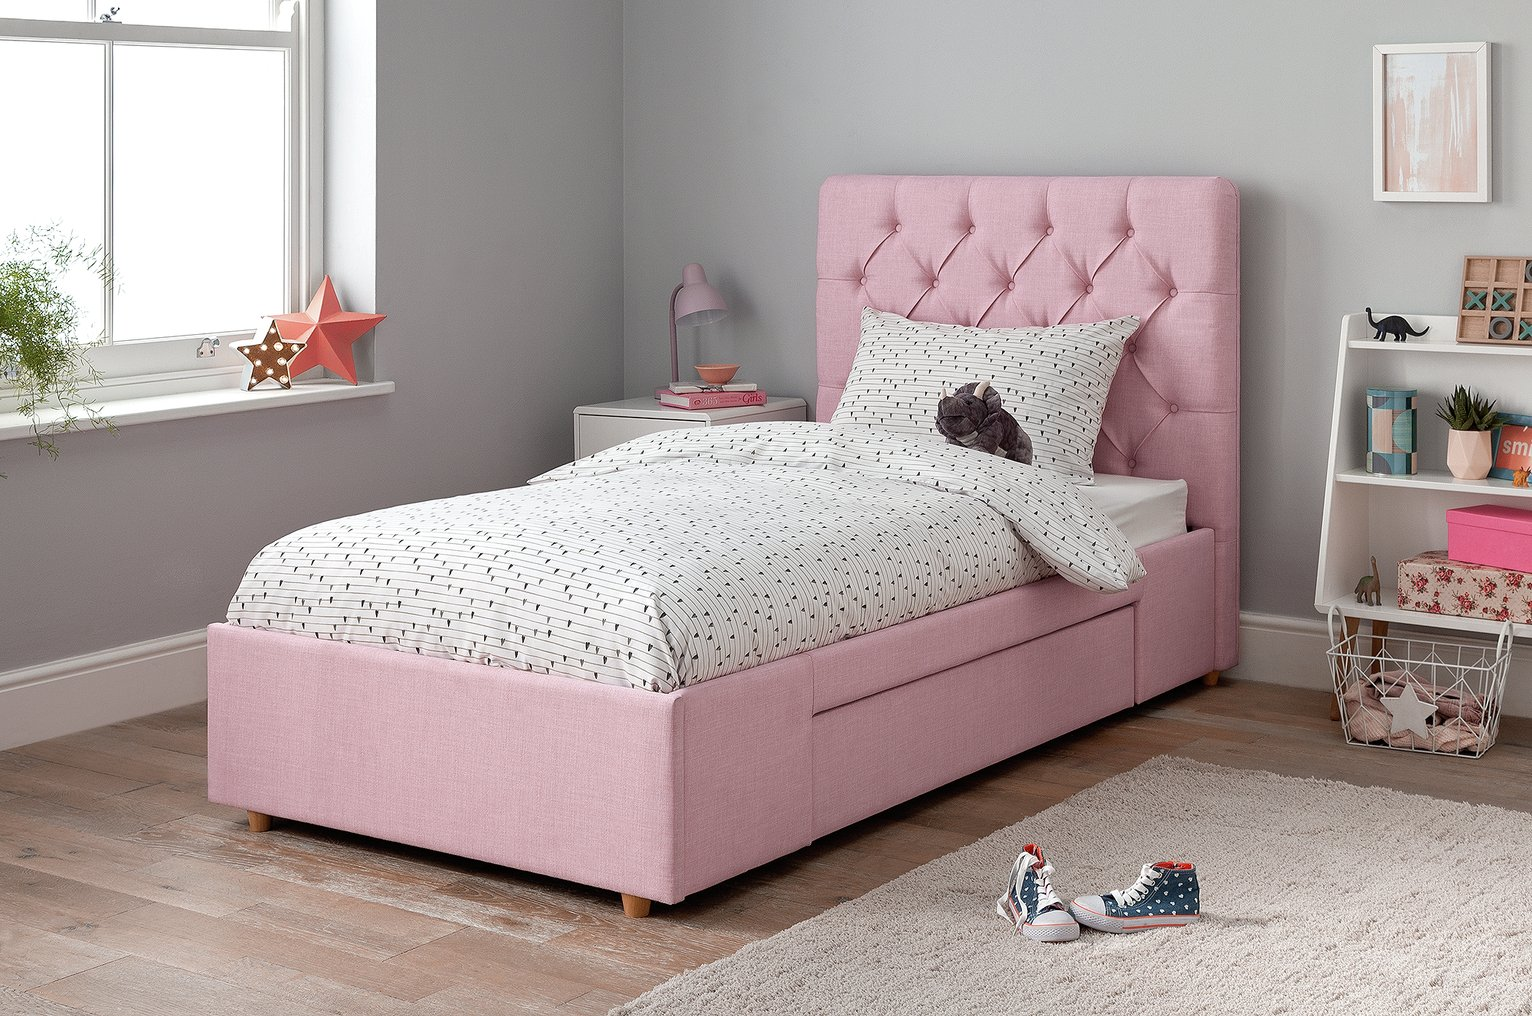 Charmant Buy Argos Home Harper Pink Single Bed Frame | Kids Beds | Argos